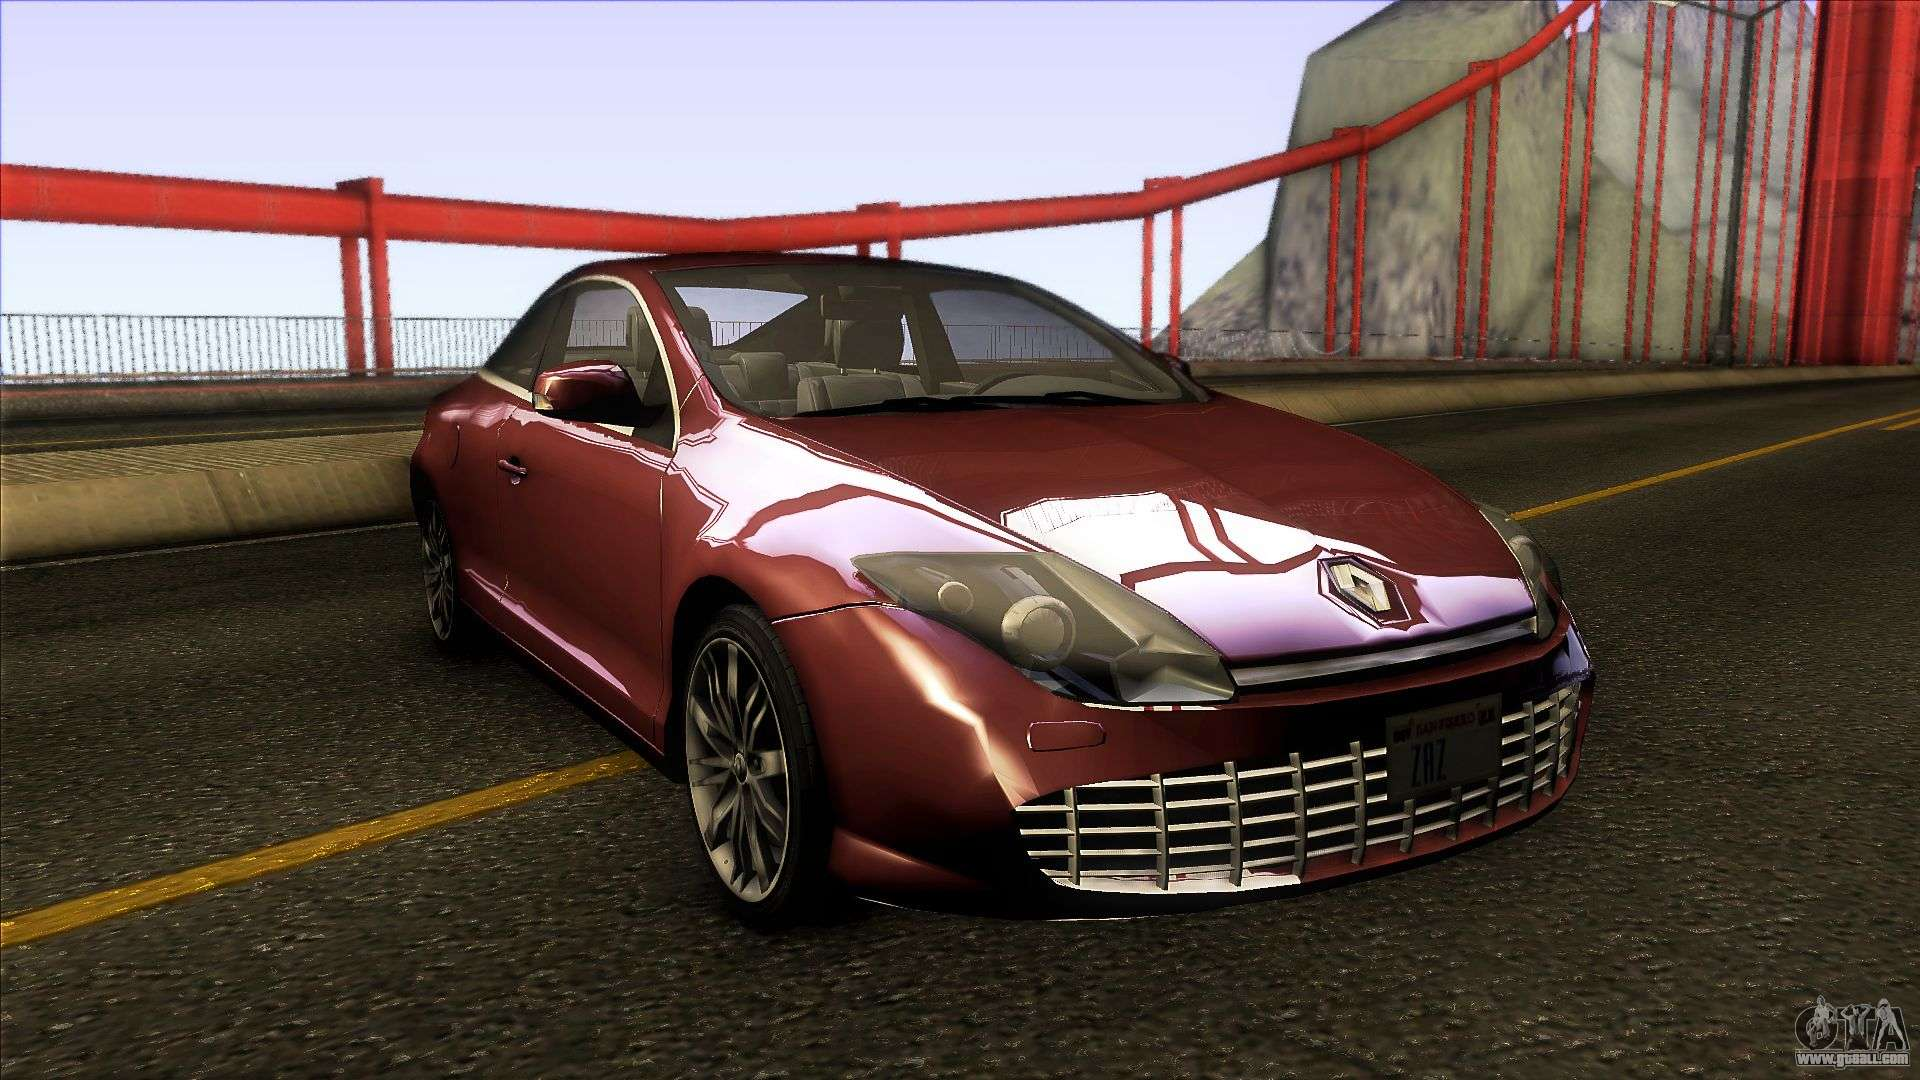 renault laguna iii coupe x91 2012 for gta san andreas. Black Bedroom Furniture Sets. Home Design Ideas